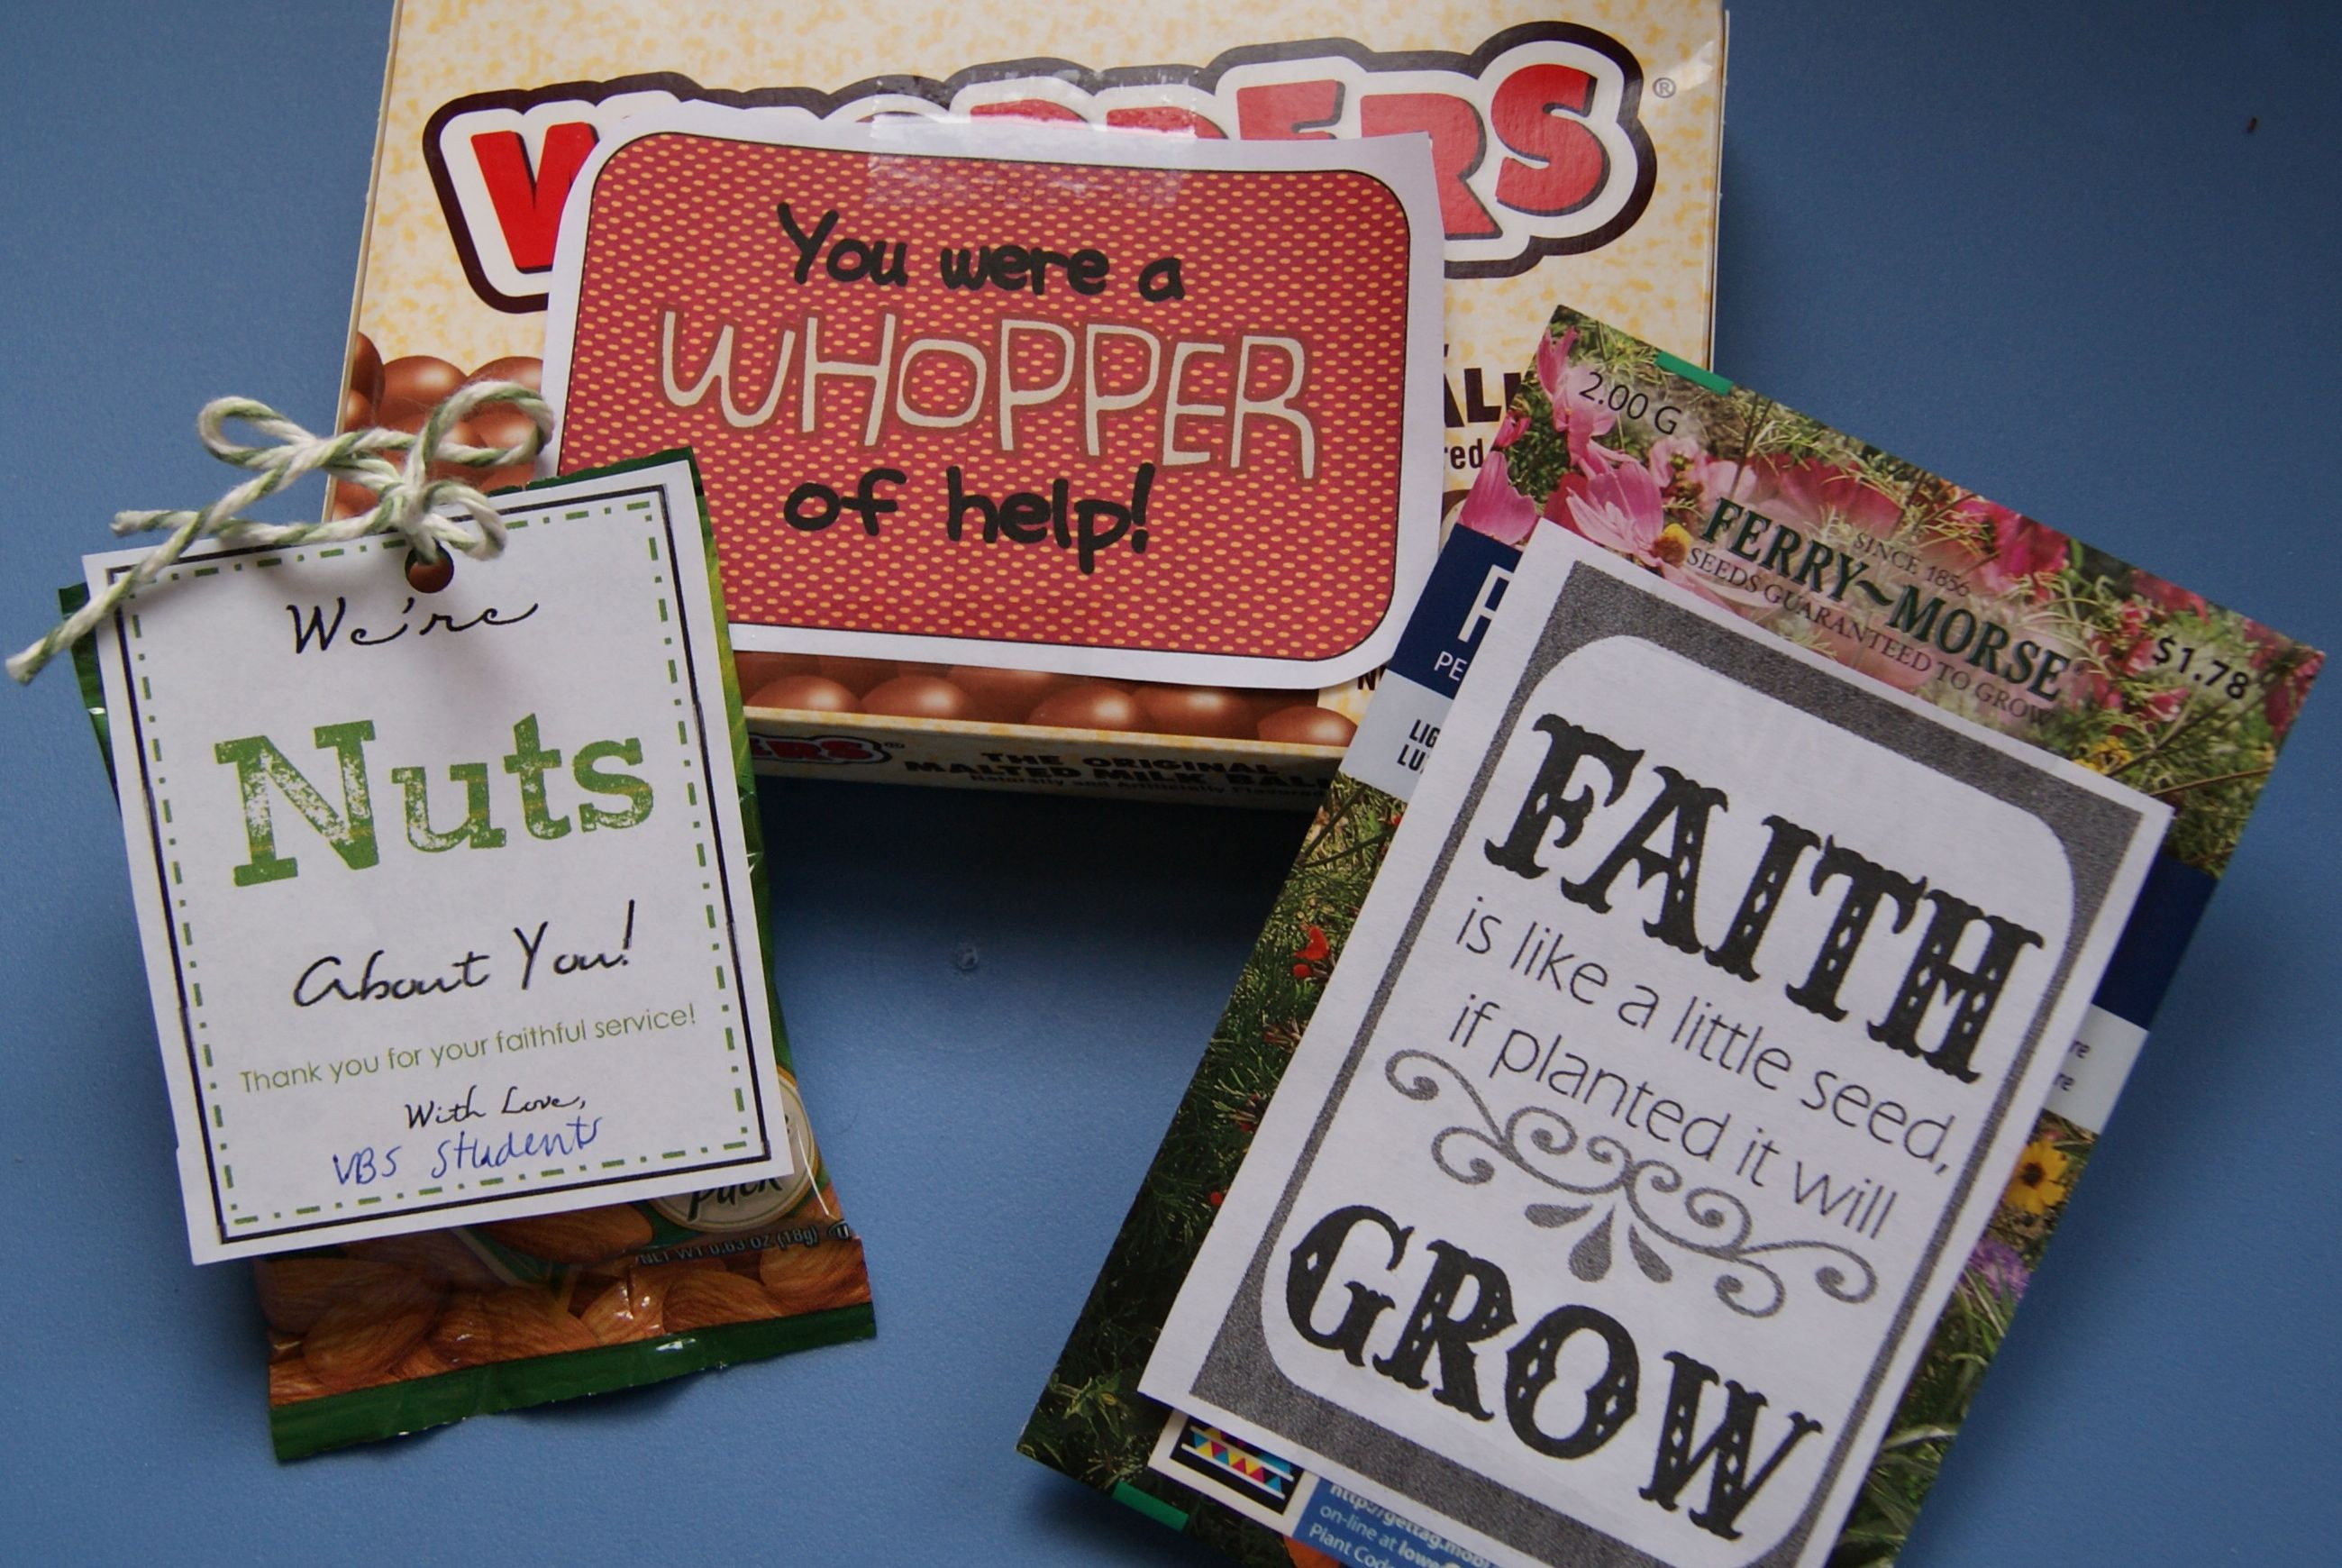 Best ideas about Volunteer Gift Ideas . Save or Pin 3 Volunteer Recognition Gifts for Sunday School VBS Now.